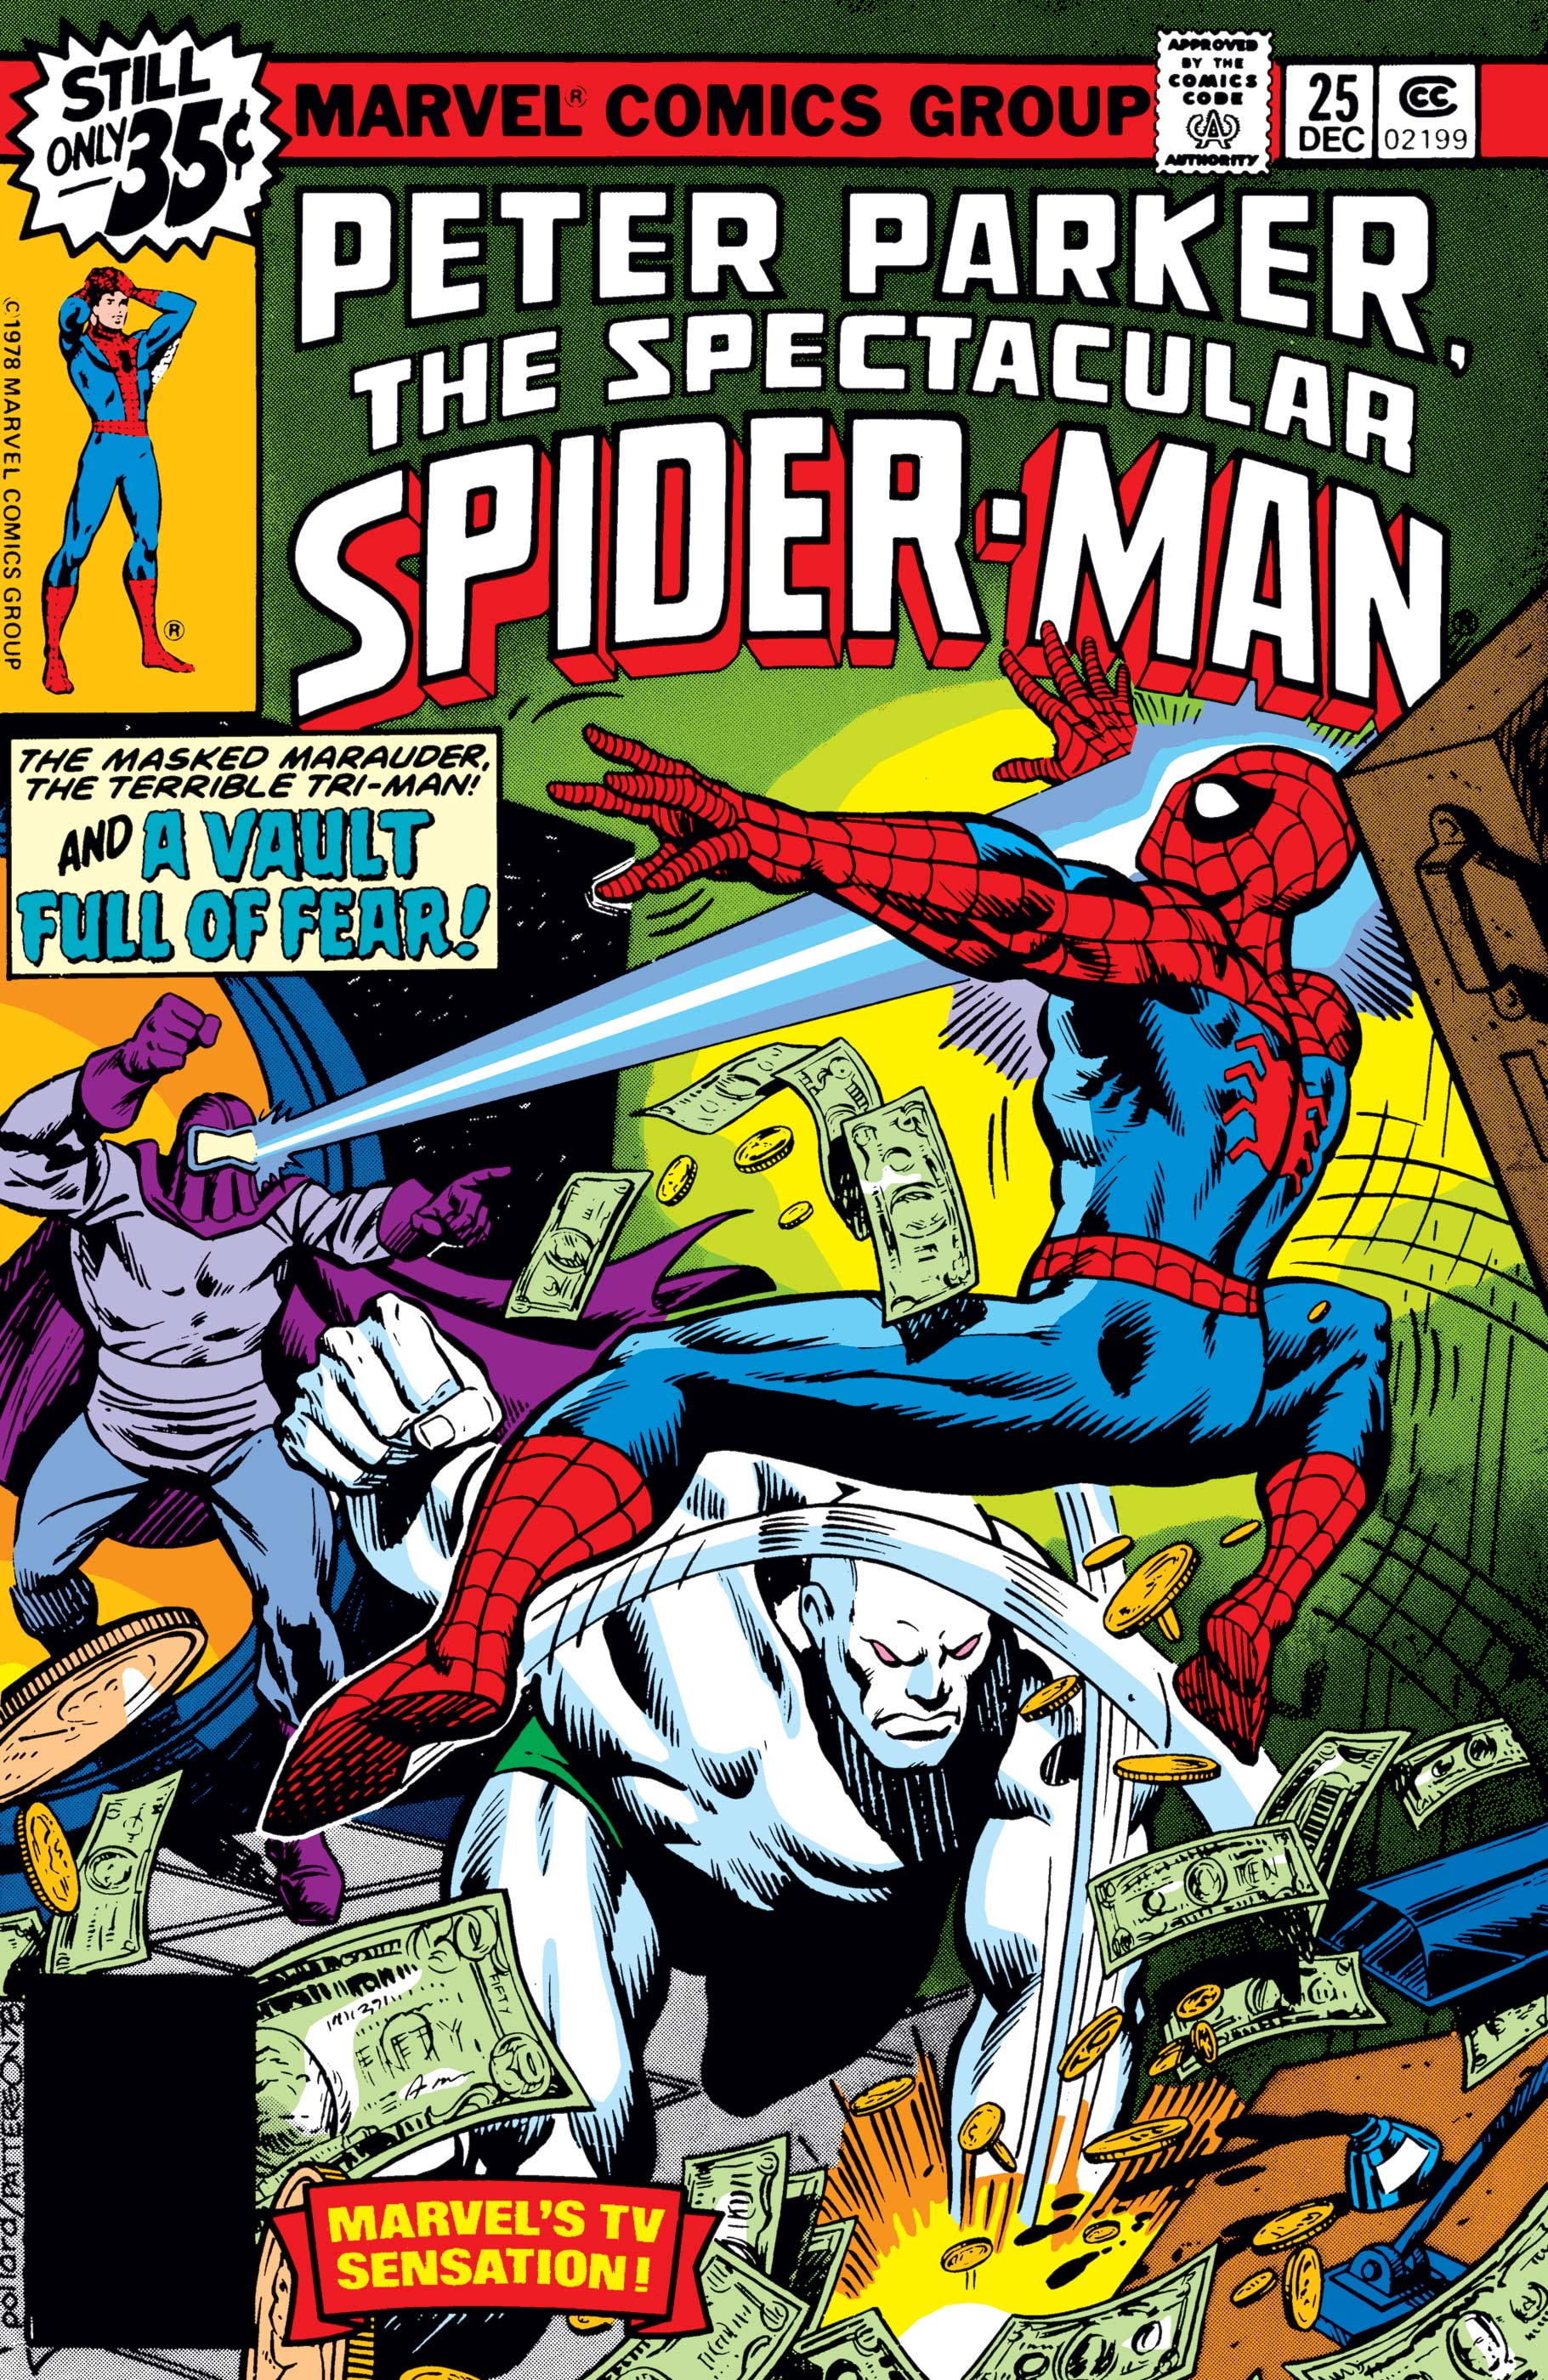 Peter Parker, the Spectacular Spider-Man (1976) #25